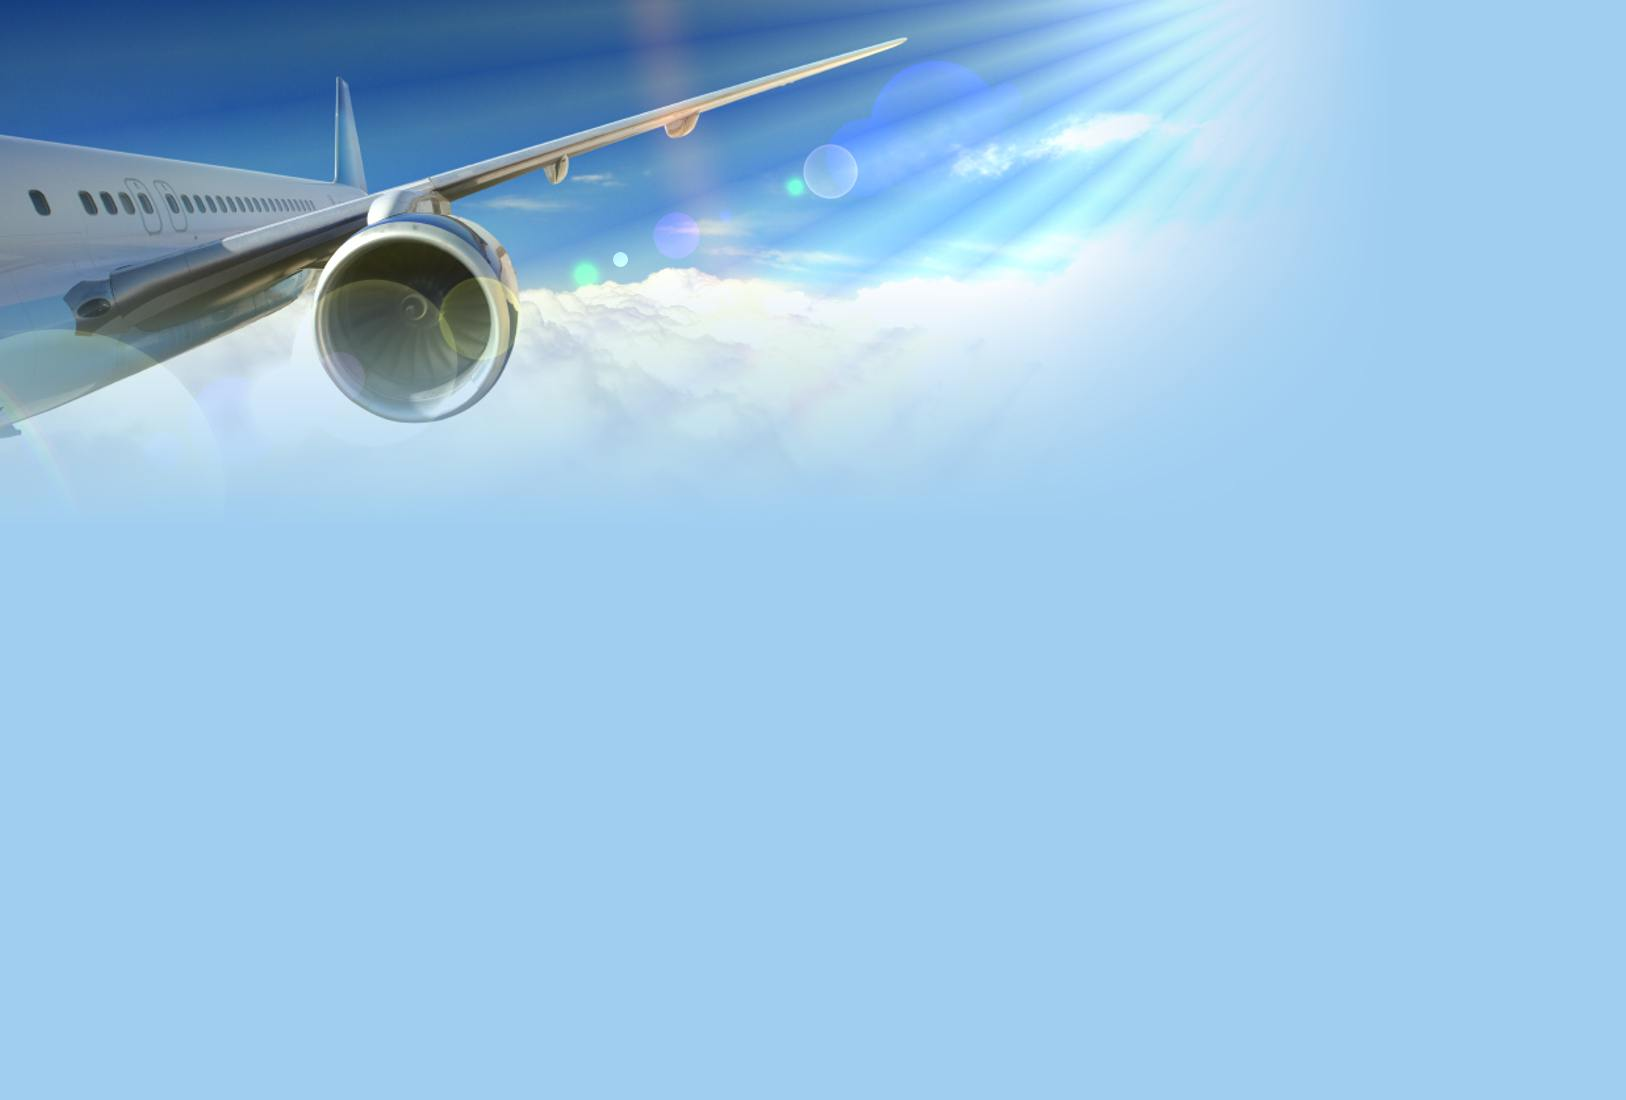 multi trip travel insurance flight background 1626x1100